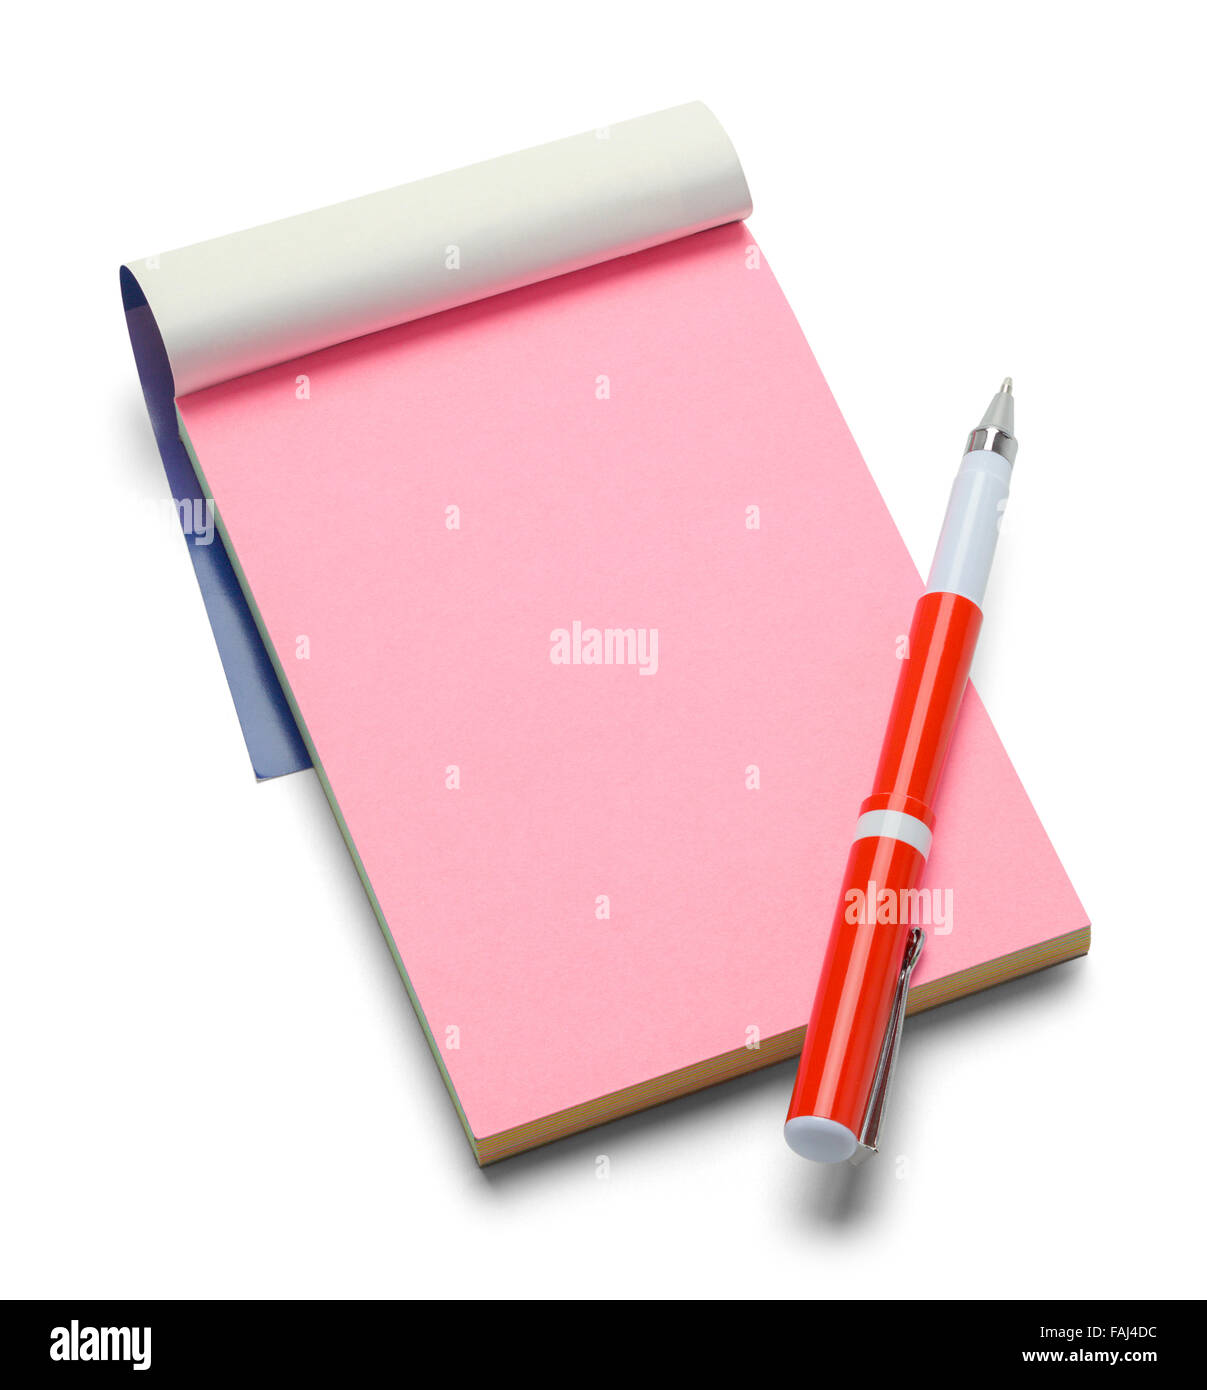 Small Pink Notepad and Pen Isolated on a White Background. - Stock Image